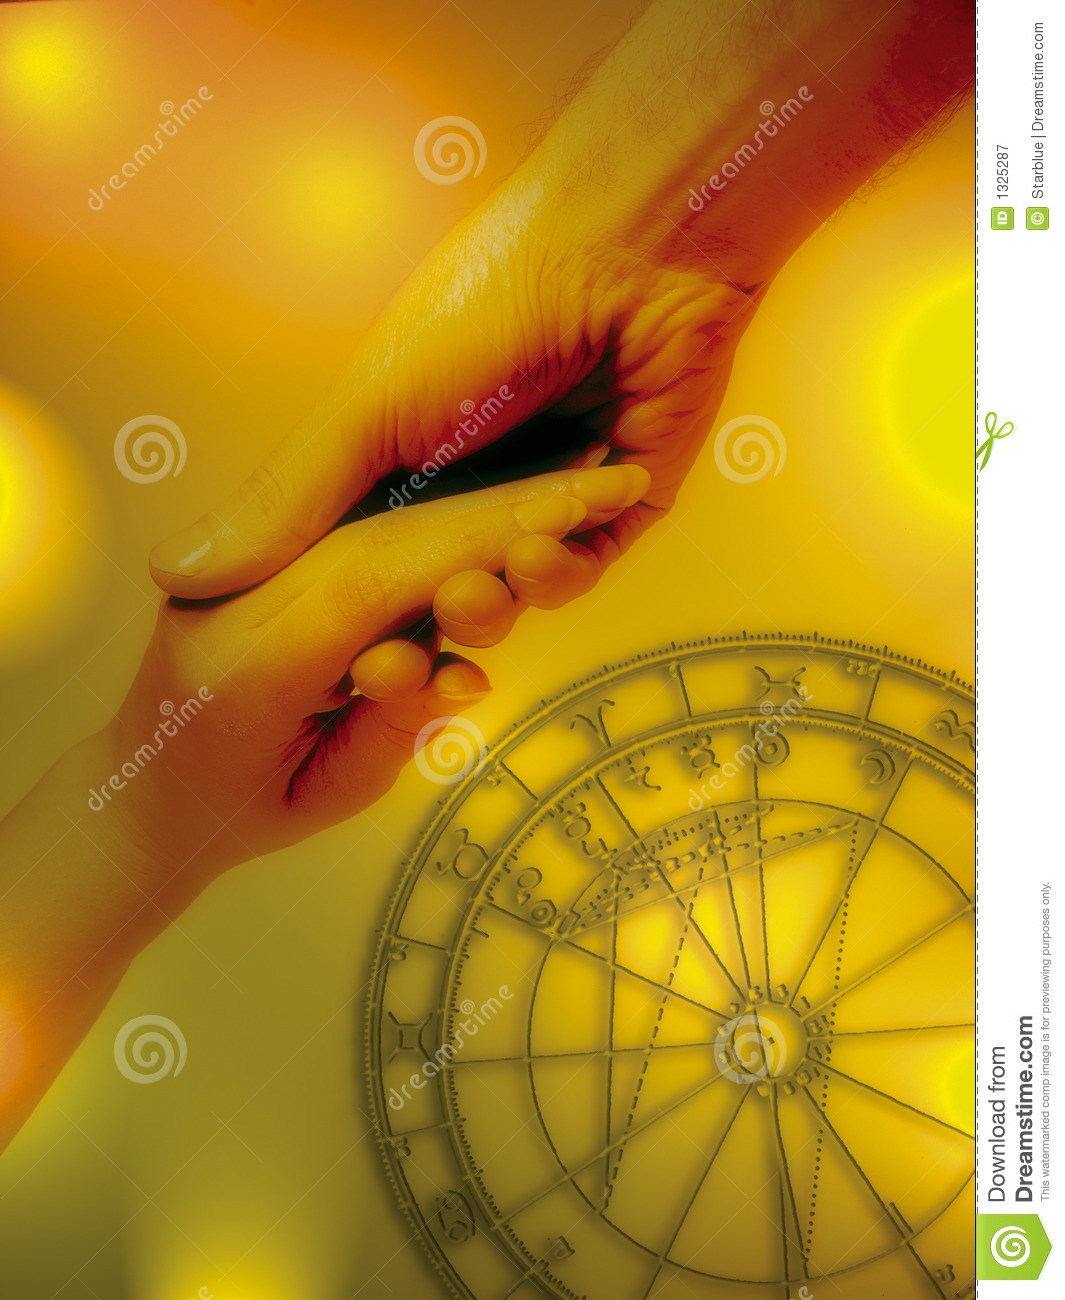 Astrology And Love Stock Image Image Of Magical Loving 1325287